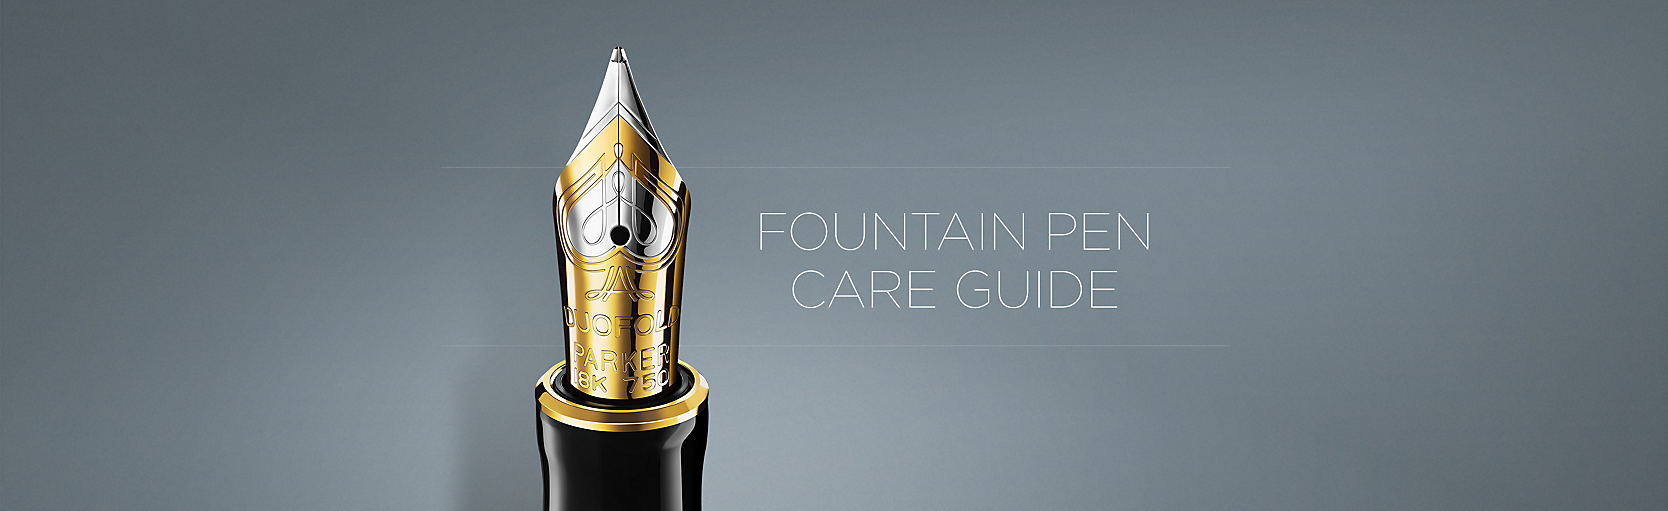 Fountainpen Care Guide